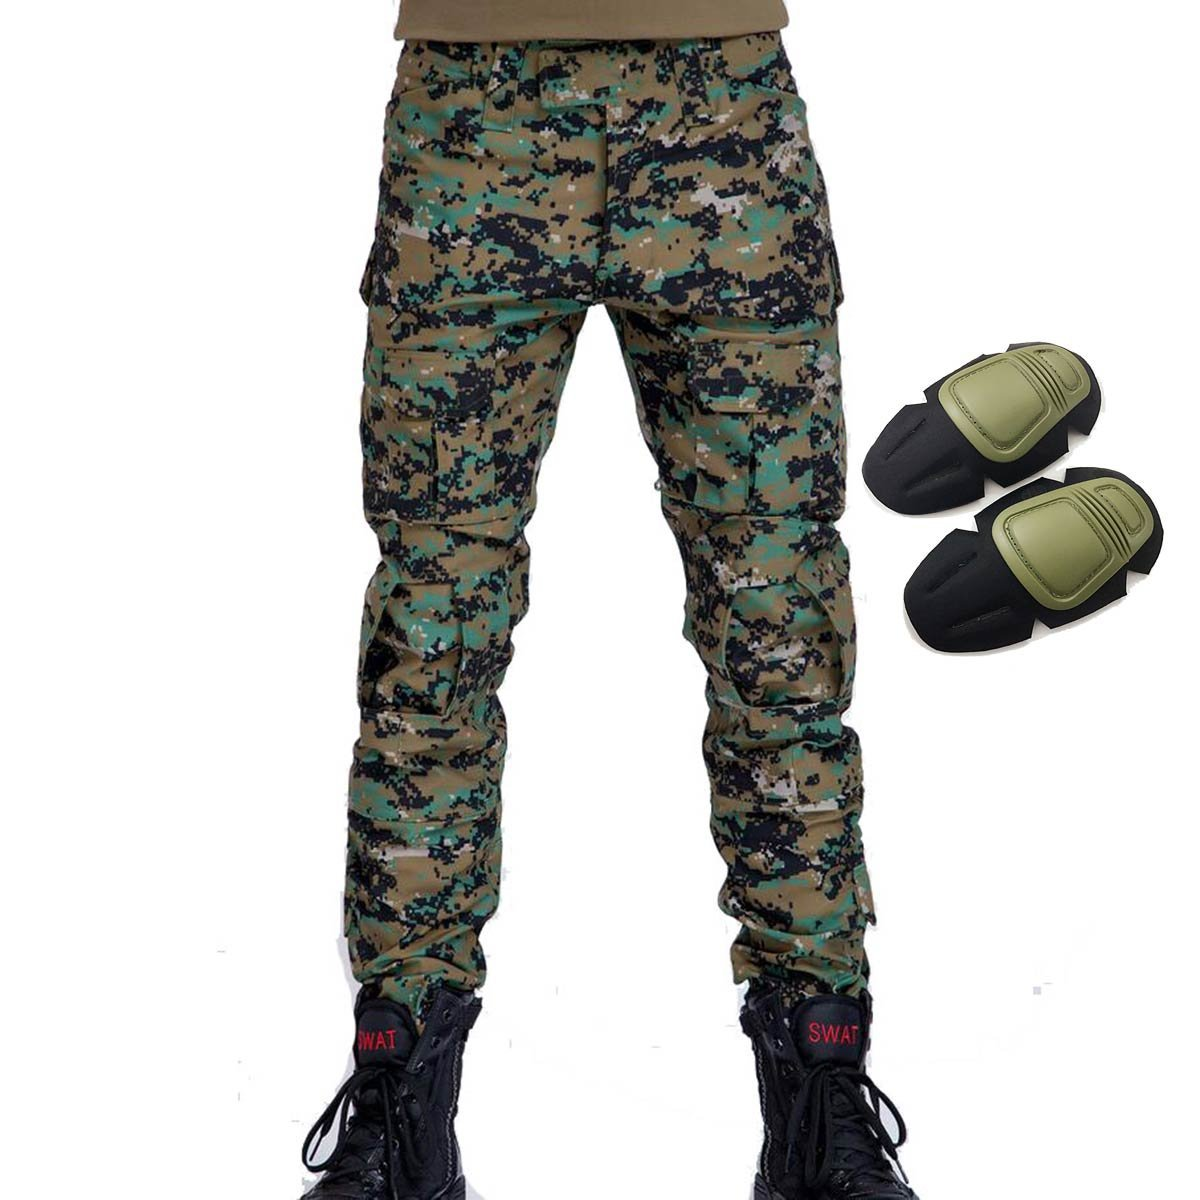 2814727a1a33 Get Quotations · Military Army Tactical Airsoft Paintball Shooting Pants  Combat Men Pants with Knee Pads Digital Woodland